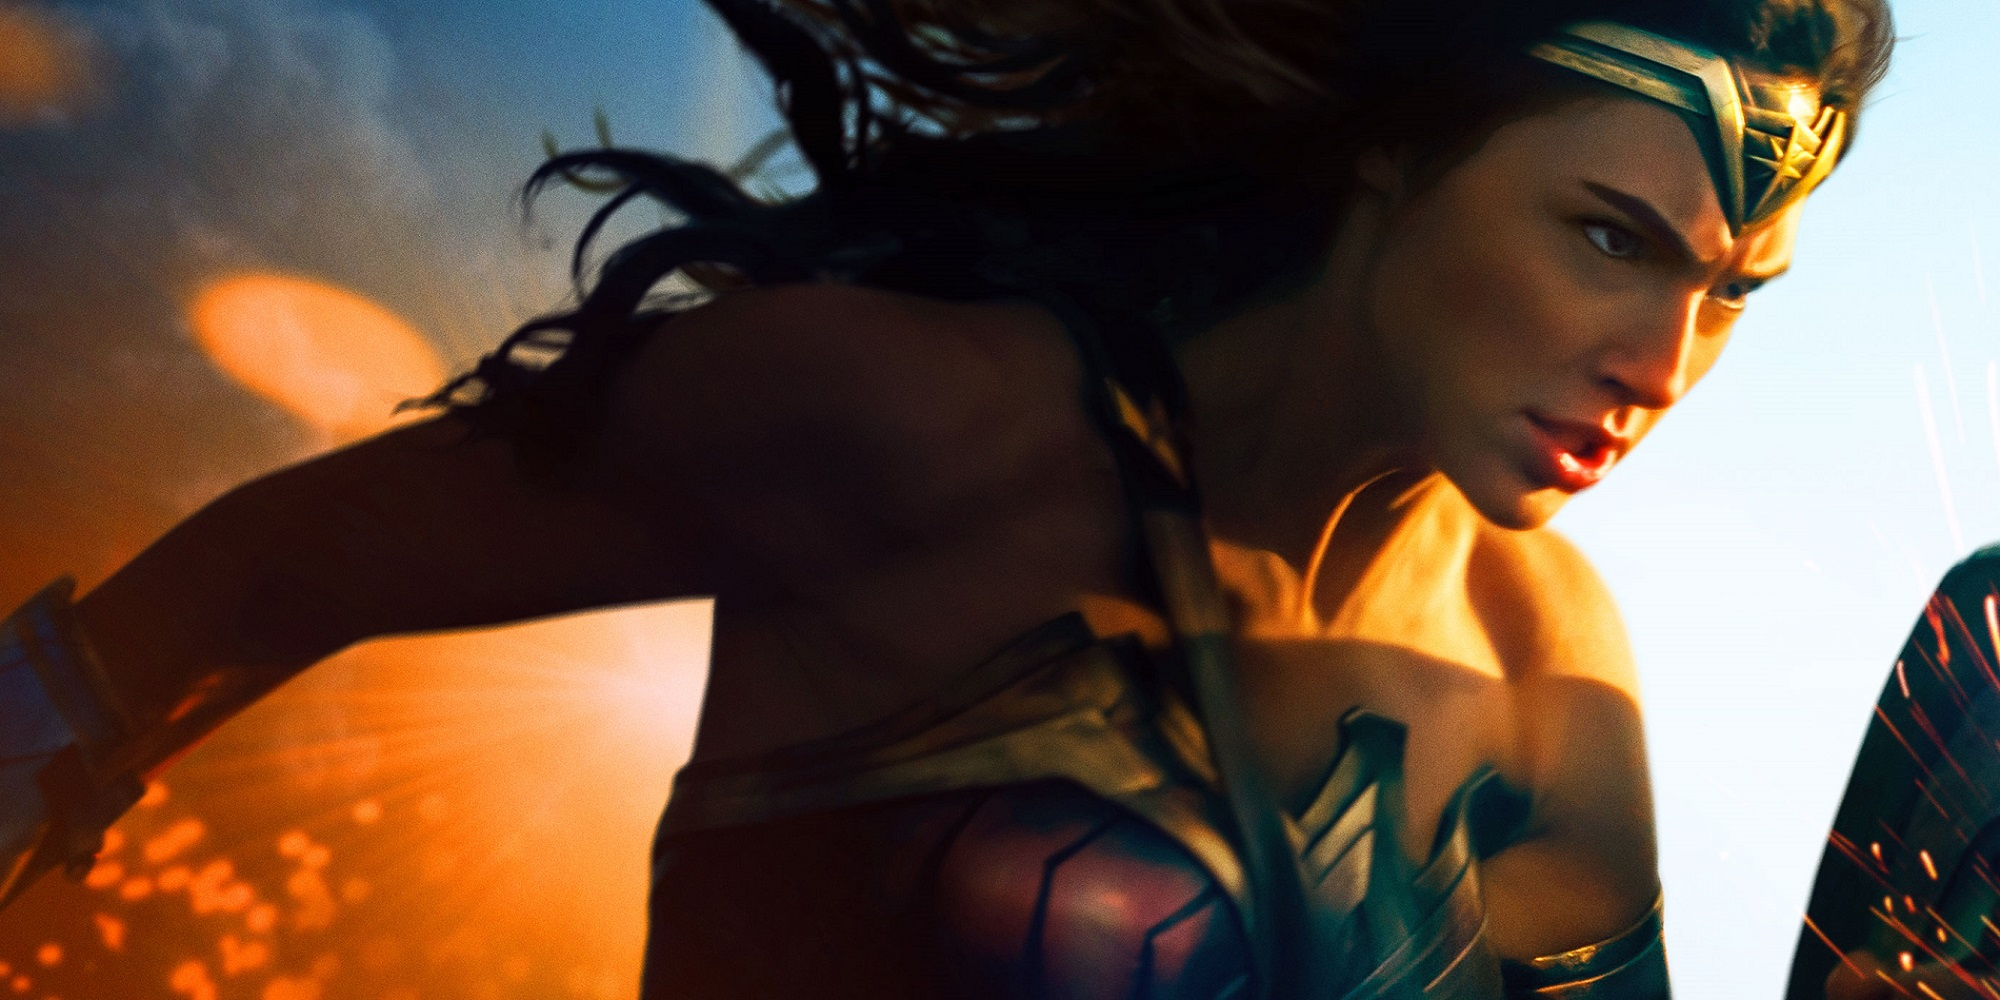 Wonder Woman leaps through the air, a striking sunset in the background, holding her sword and shield.